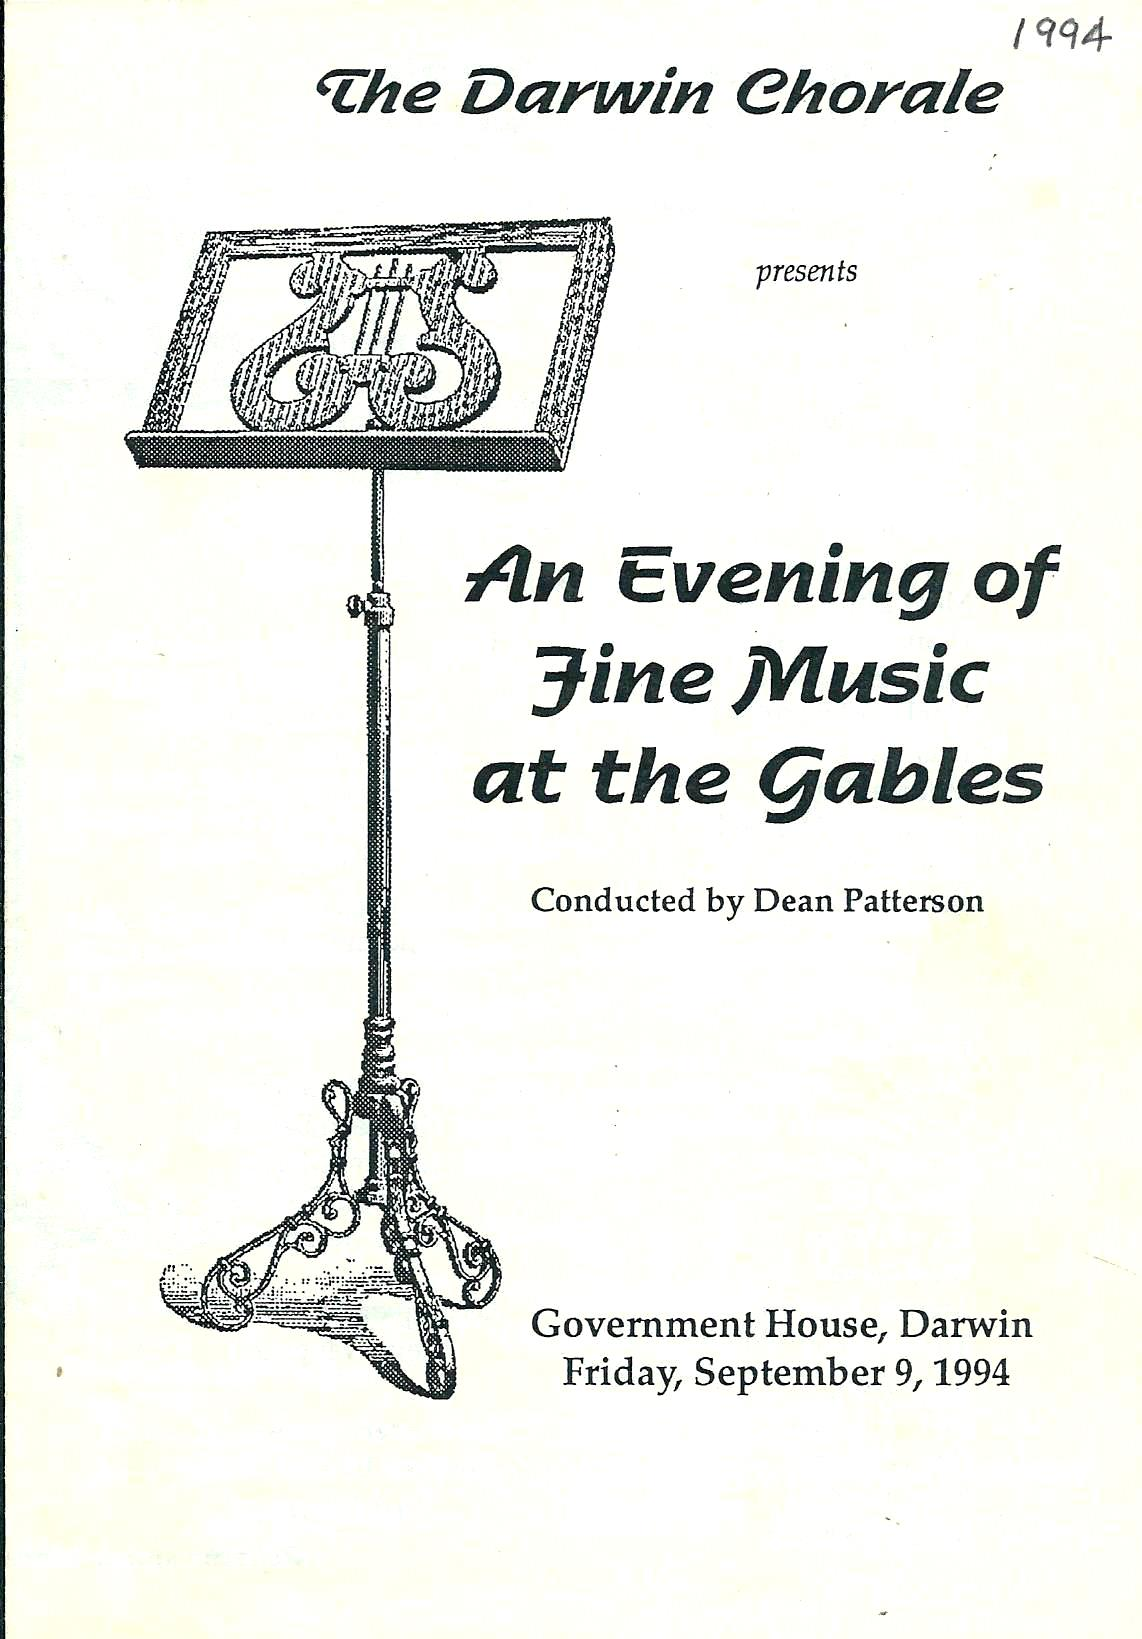 An Evening of Fine Music at the Gables